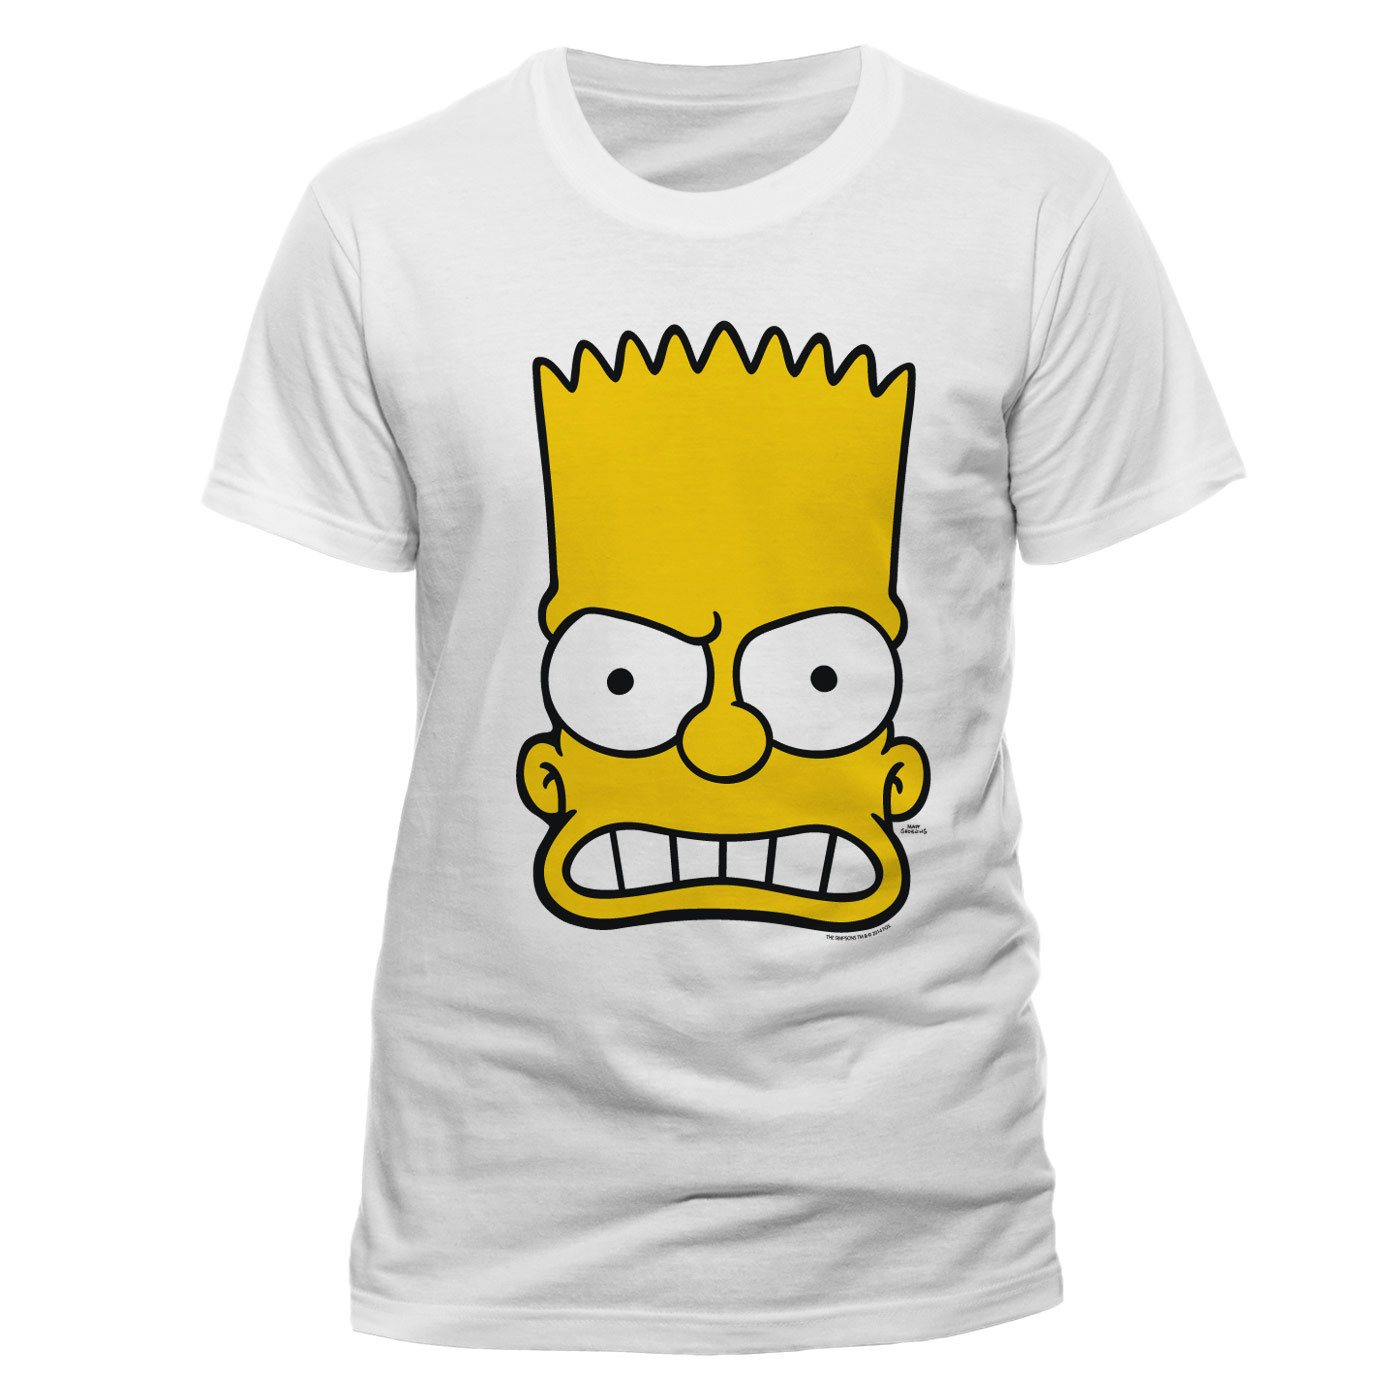 Simpsons T-Shirt Bart Face Size S